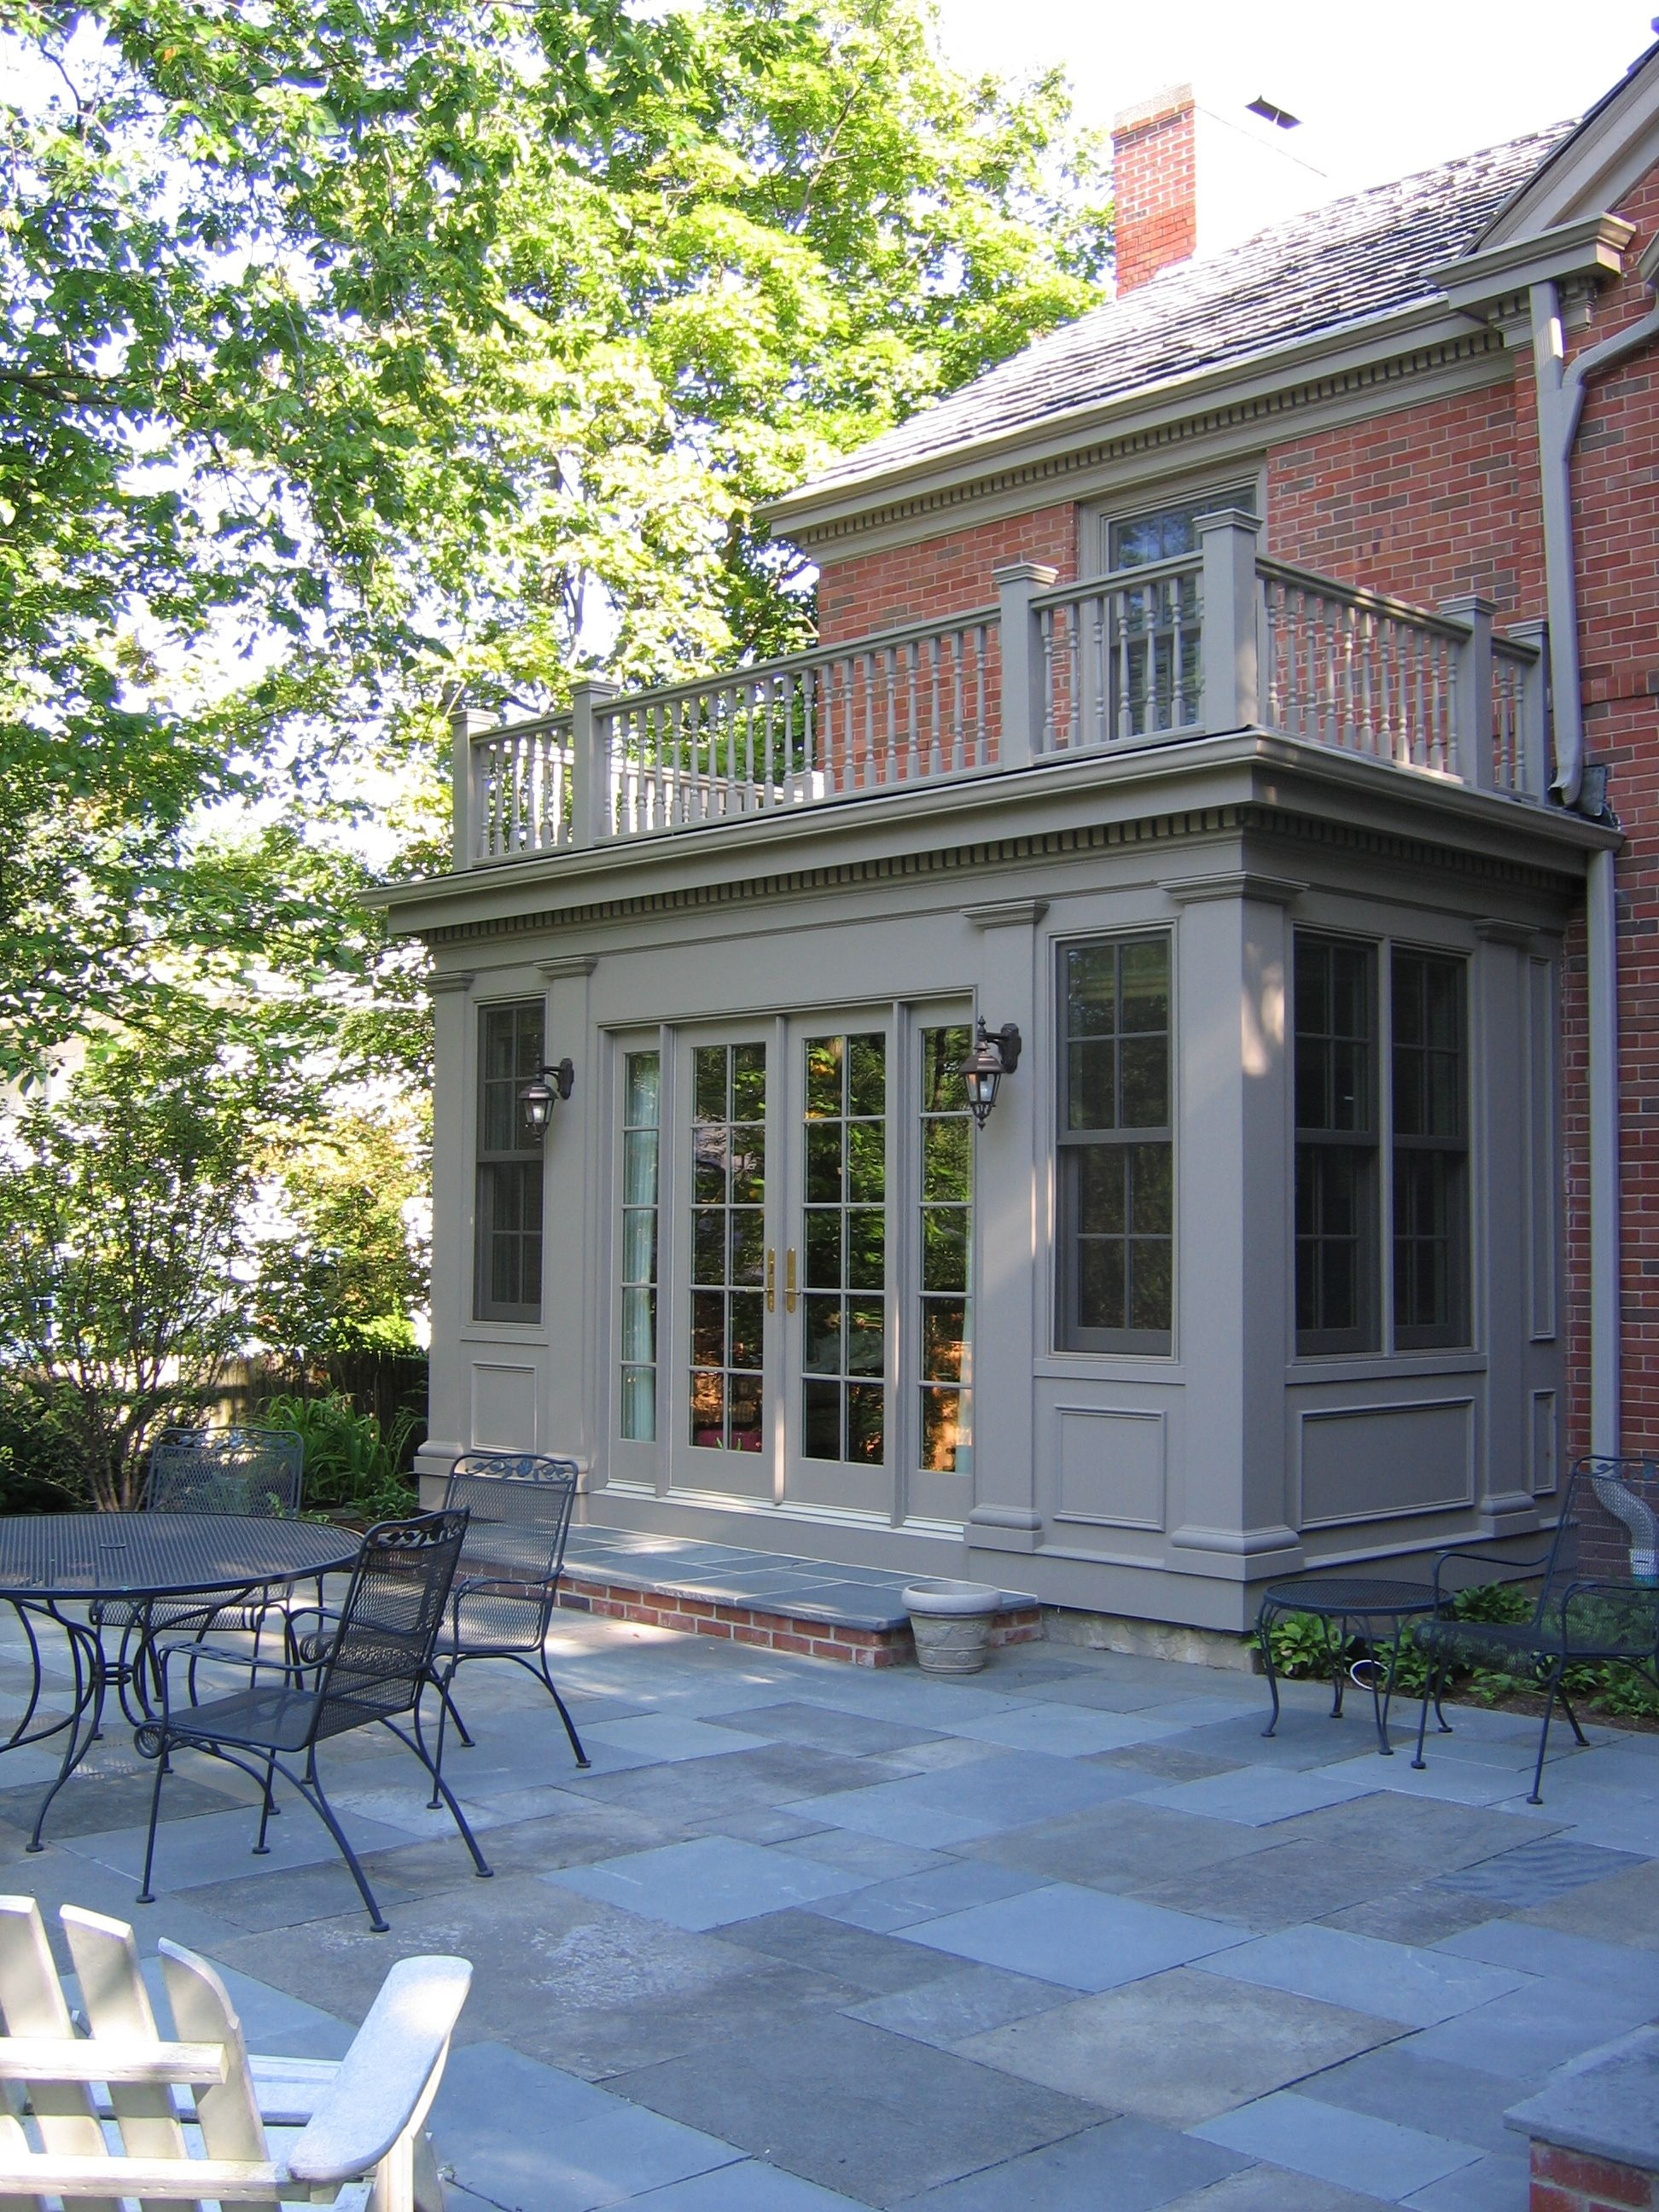 COOK ARCHITECTURAL Design StudioThe sunroom includes French doors that  open up to outdoor living space. The stone paving compliments the brick  wall and ...